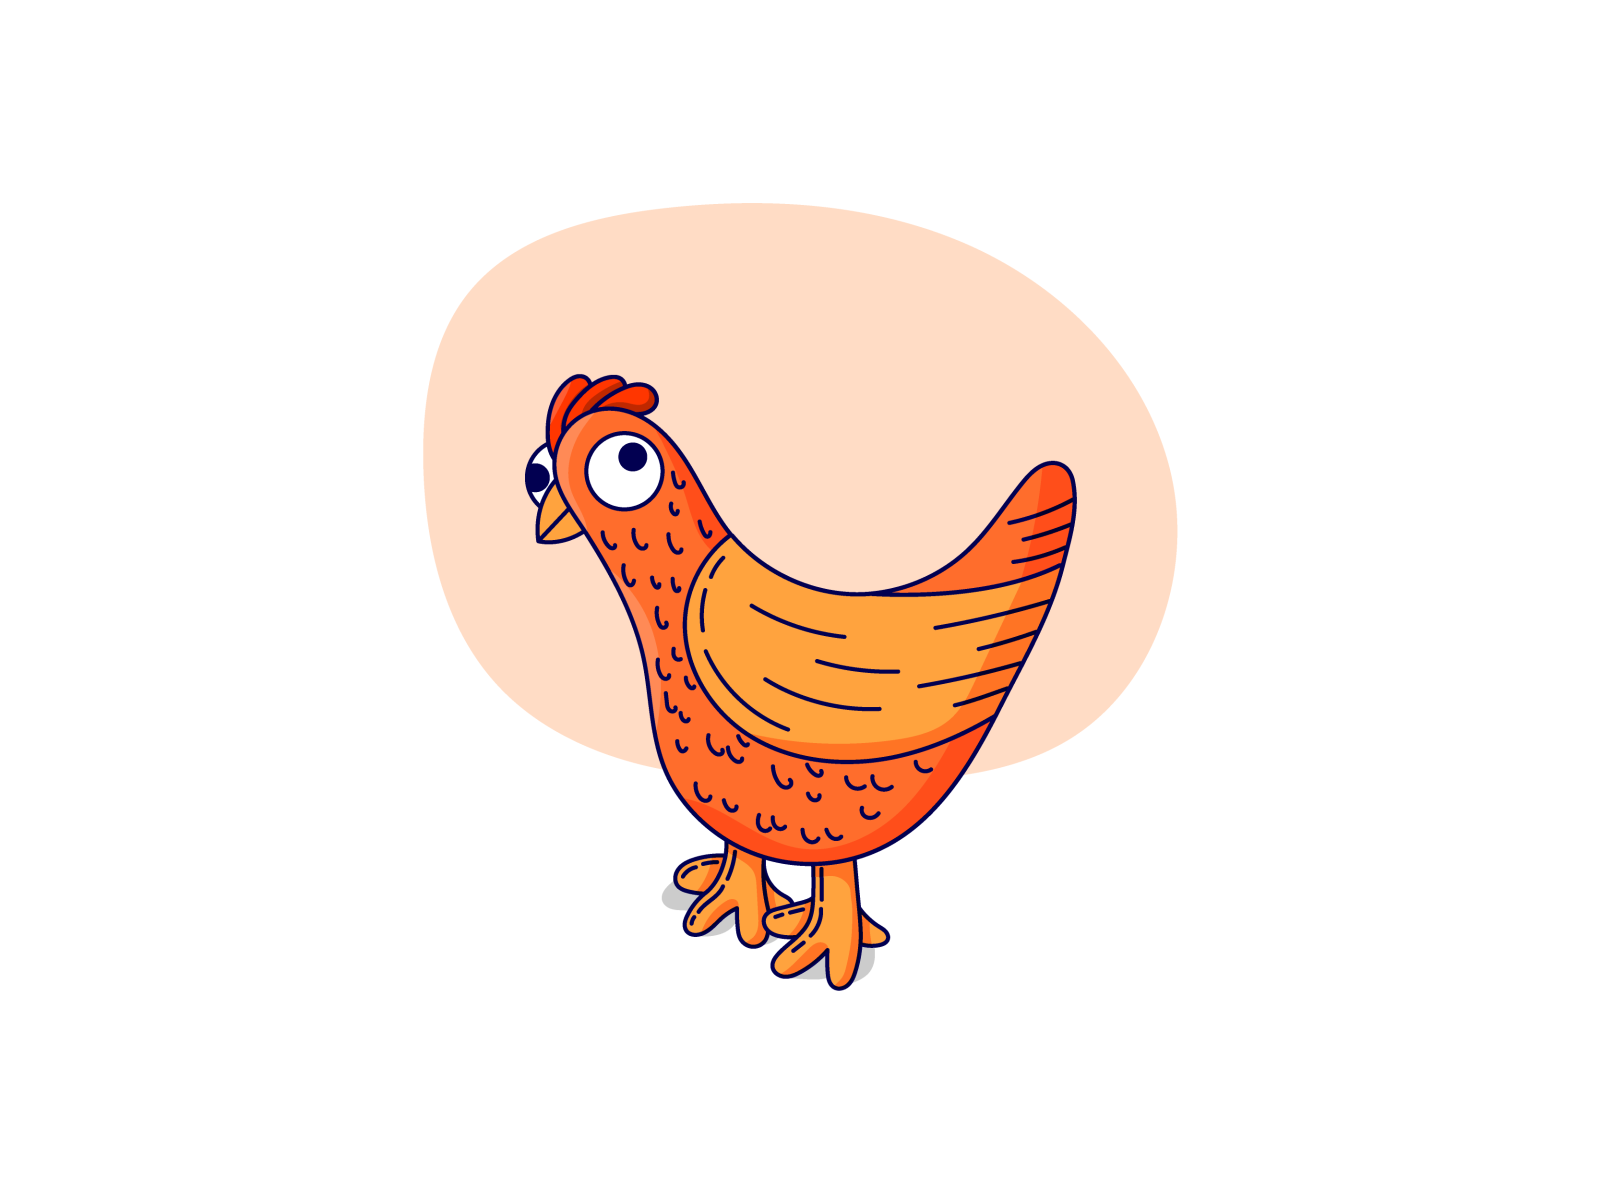 Cute Chicken By Crusenho On Dribbble Are you searching for cute chicken png images or vector? cute chicken by crusenho on dribbble